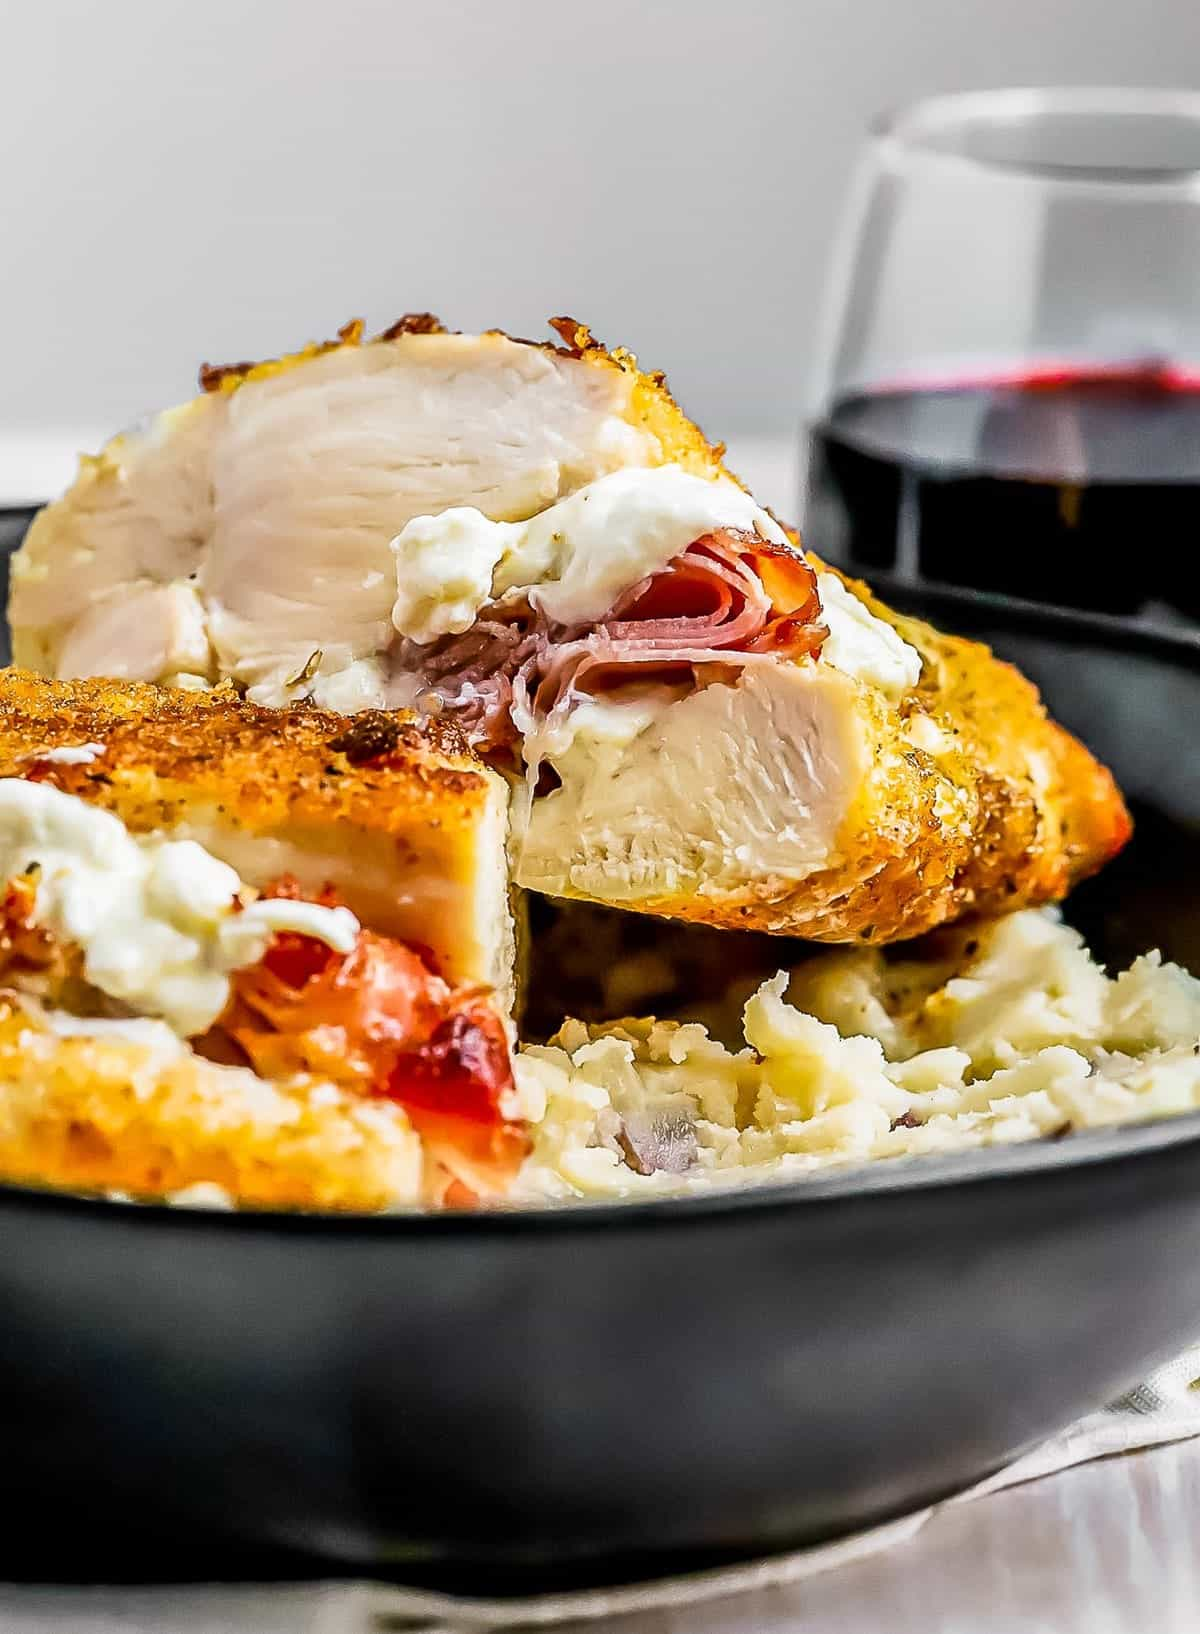 Cut shot of Prosciutto and Cheese Stuffed Chicken Breast tender juicy stuffed chicken